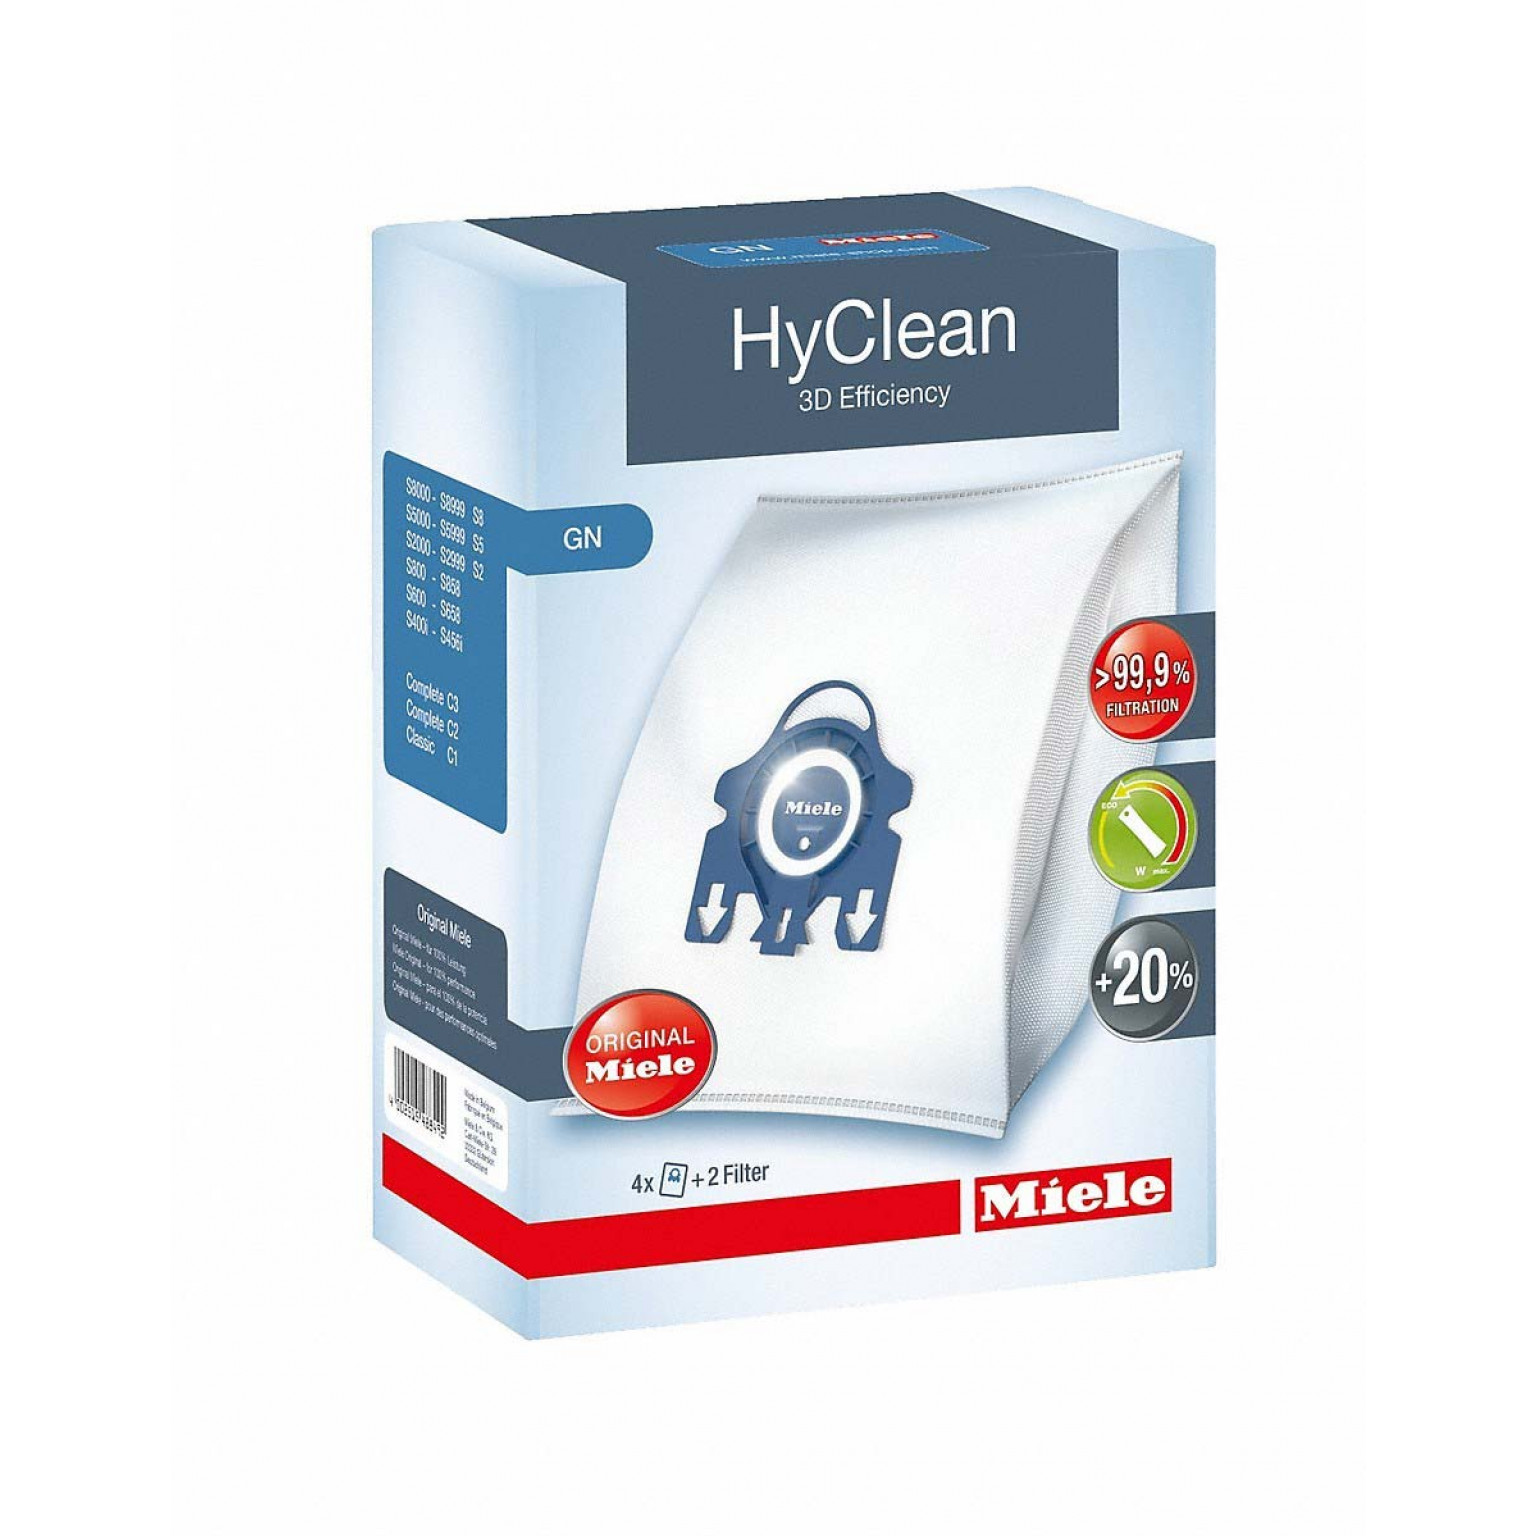 Miele HyClean 3D Efficiency GN Dustbags | 488492